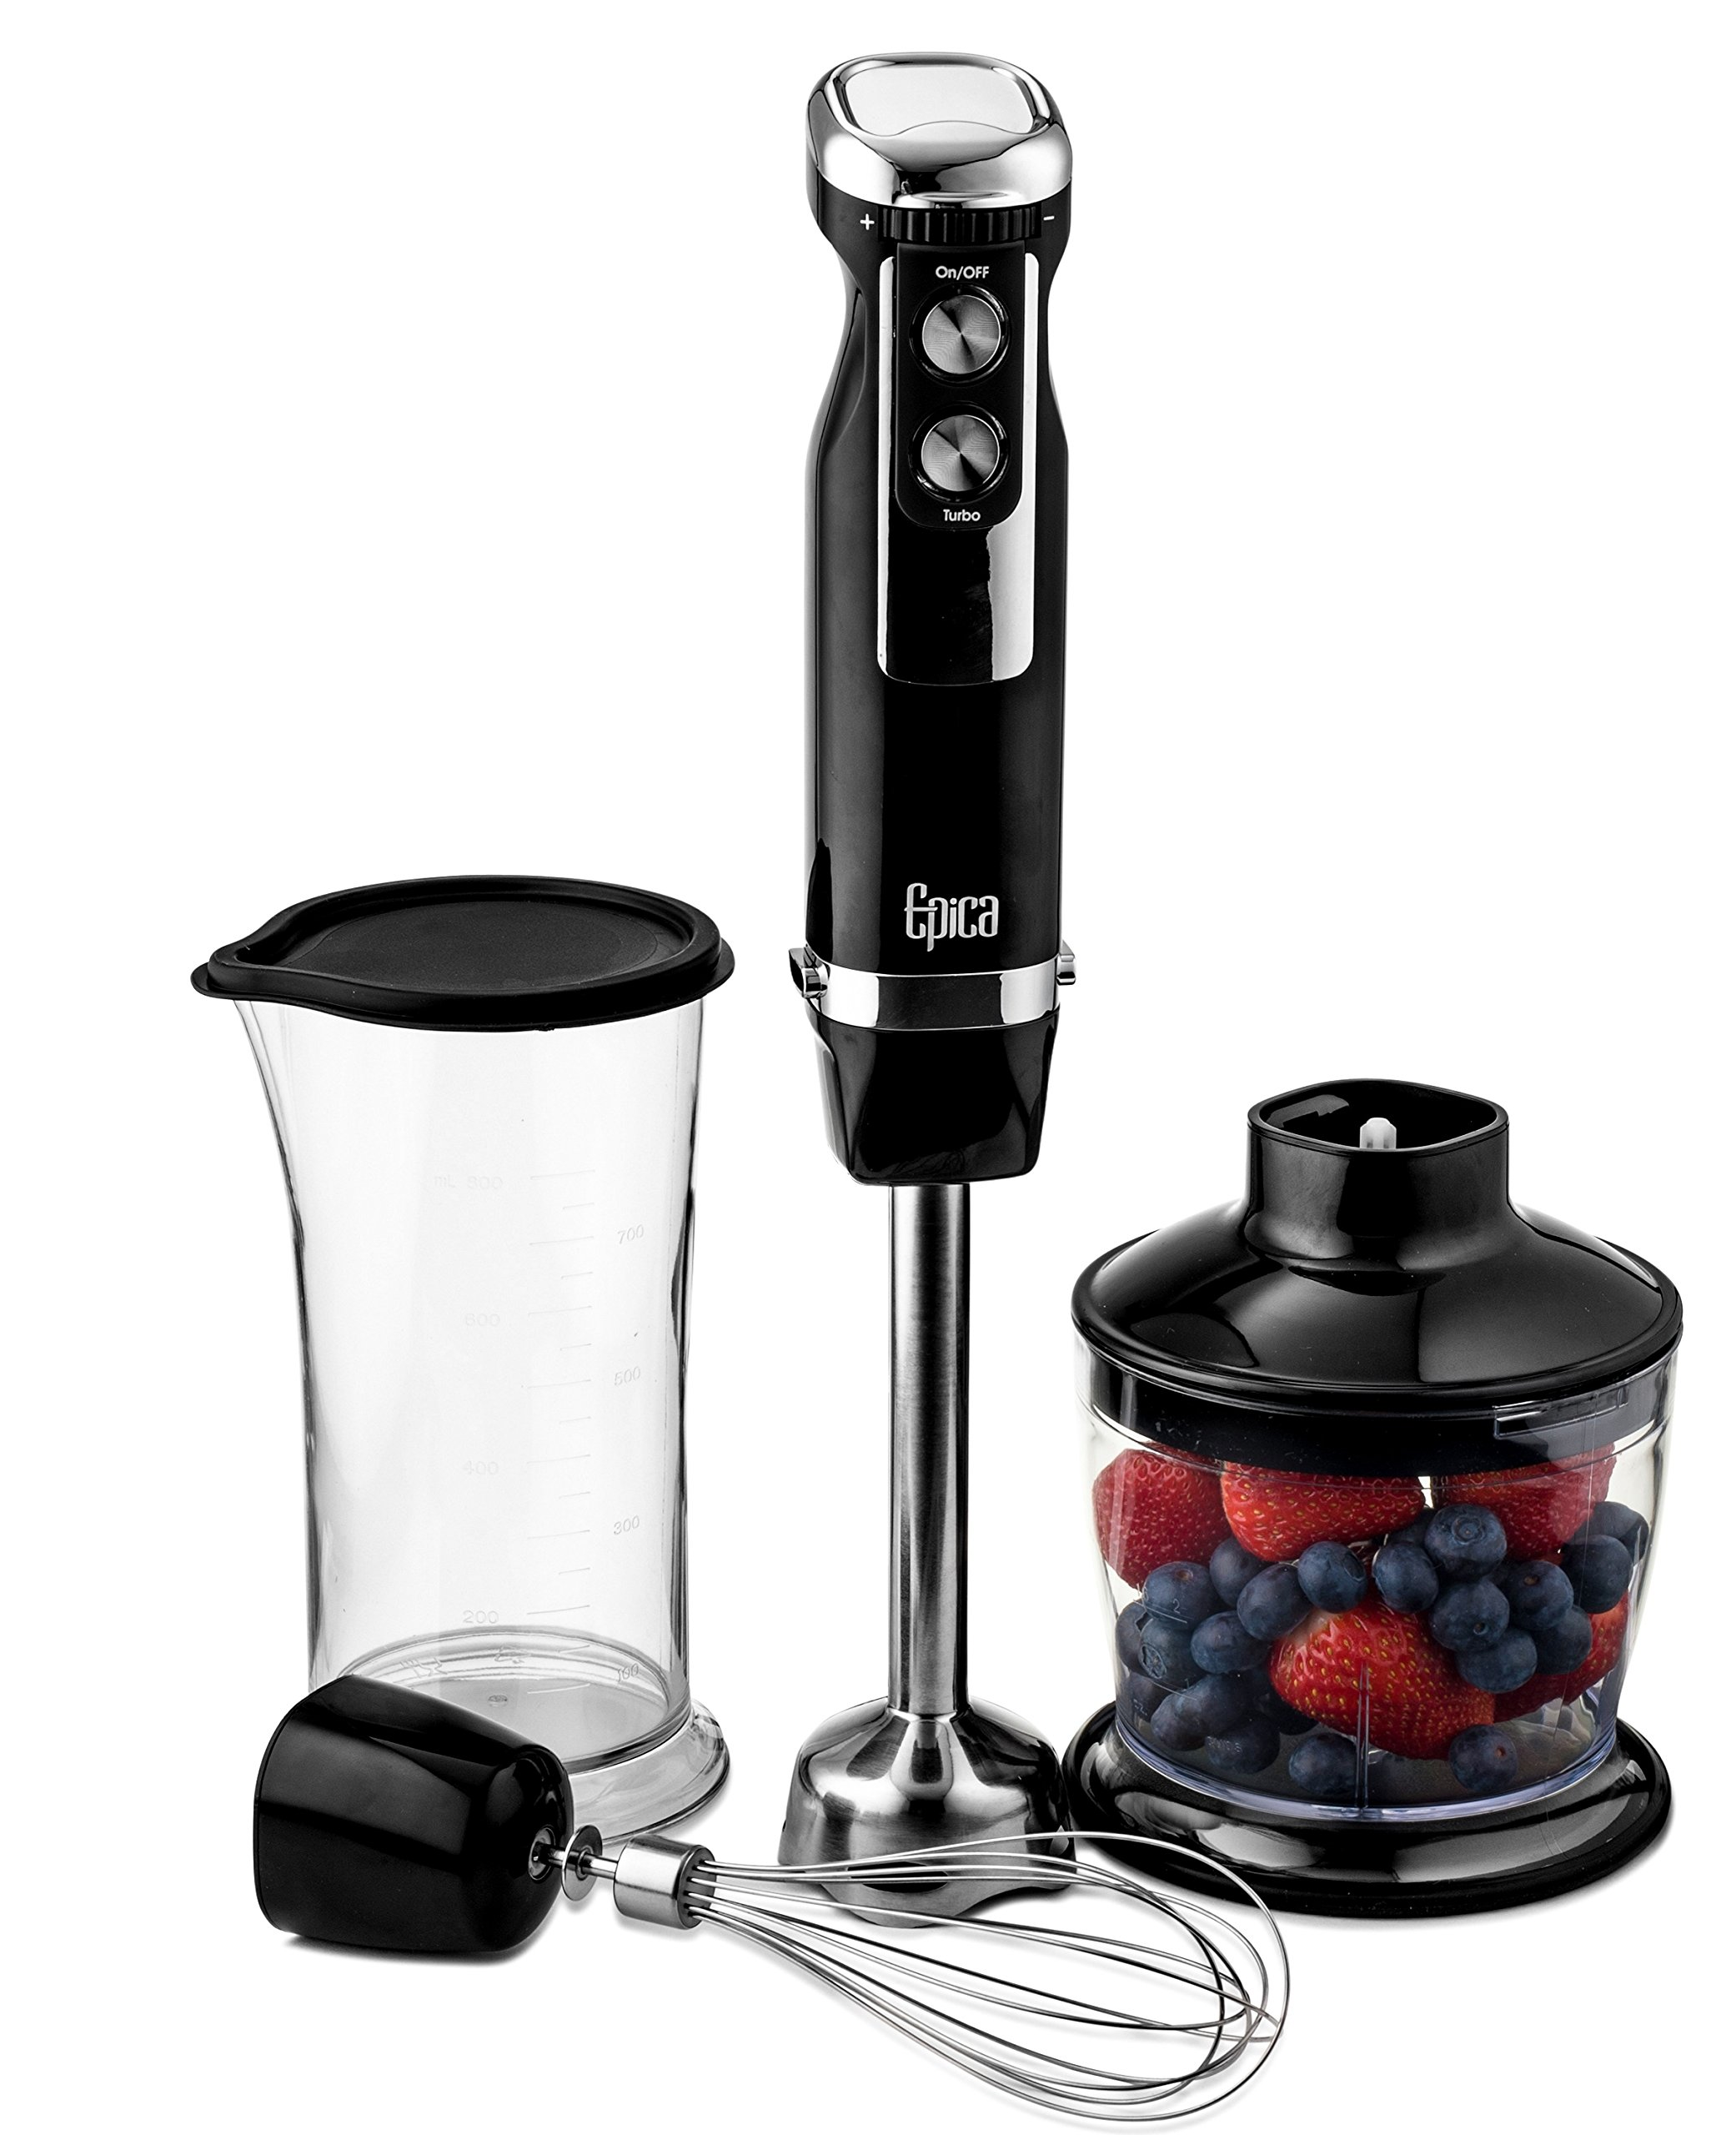 Epica Heavy Duty Immersion Hand Blender 4-in-1 by Epica